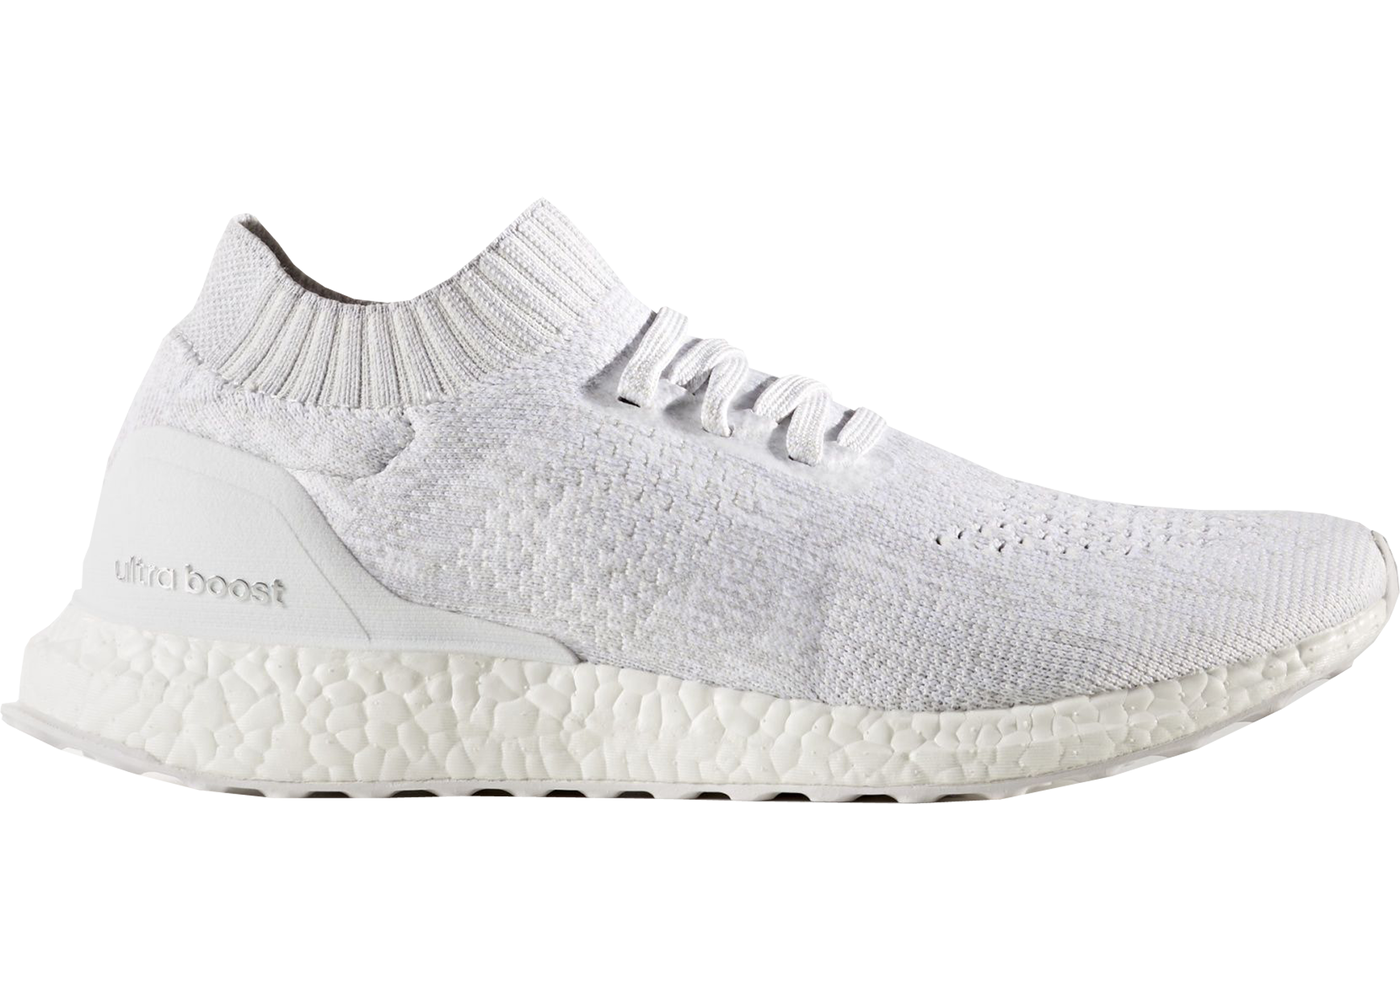 An Upcoming Pristine adidas Ultra Boost Uncaged